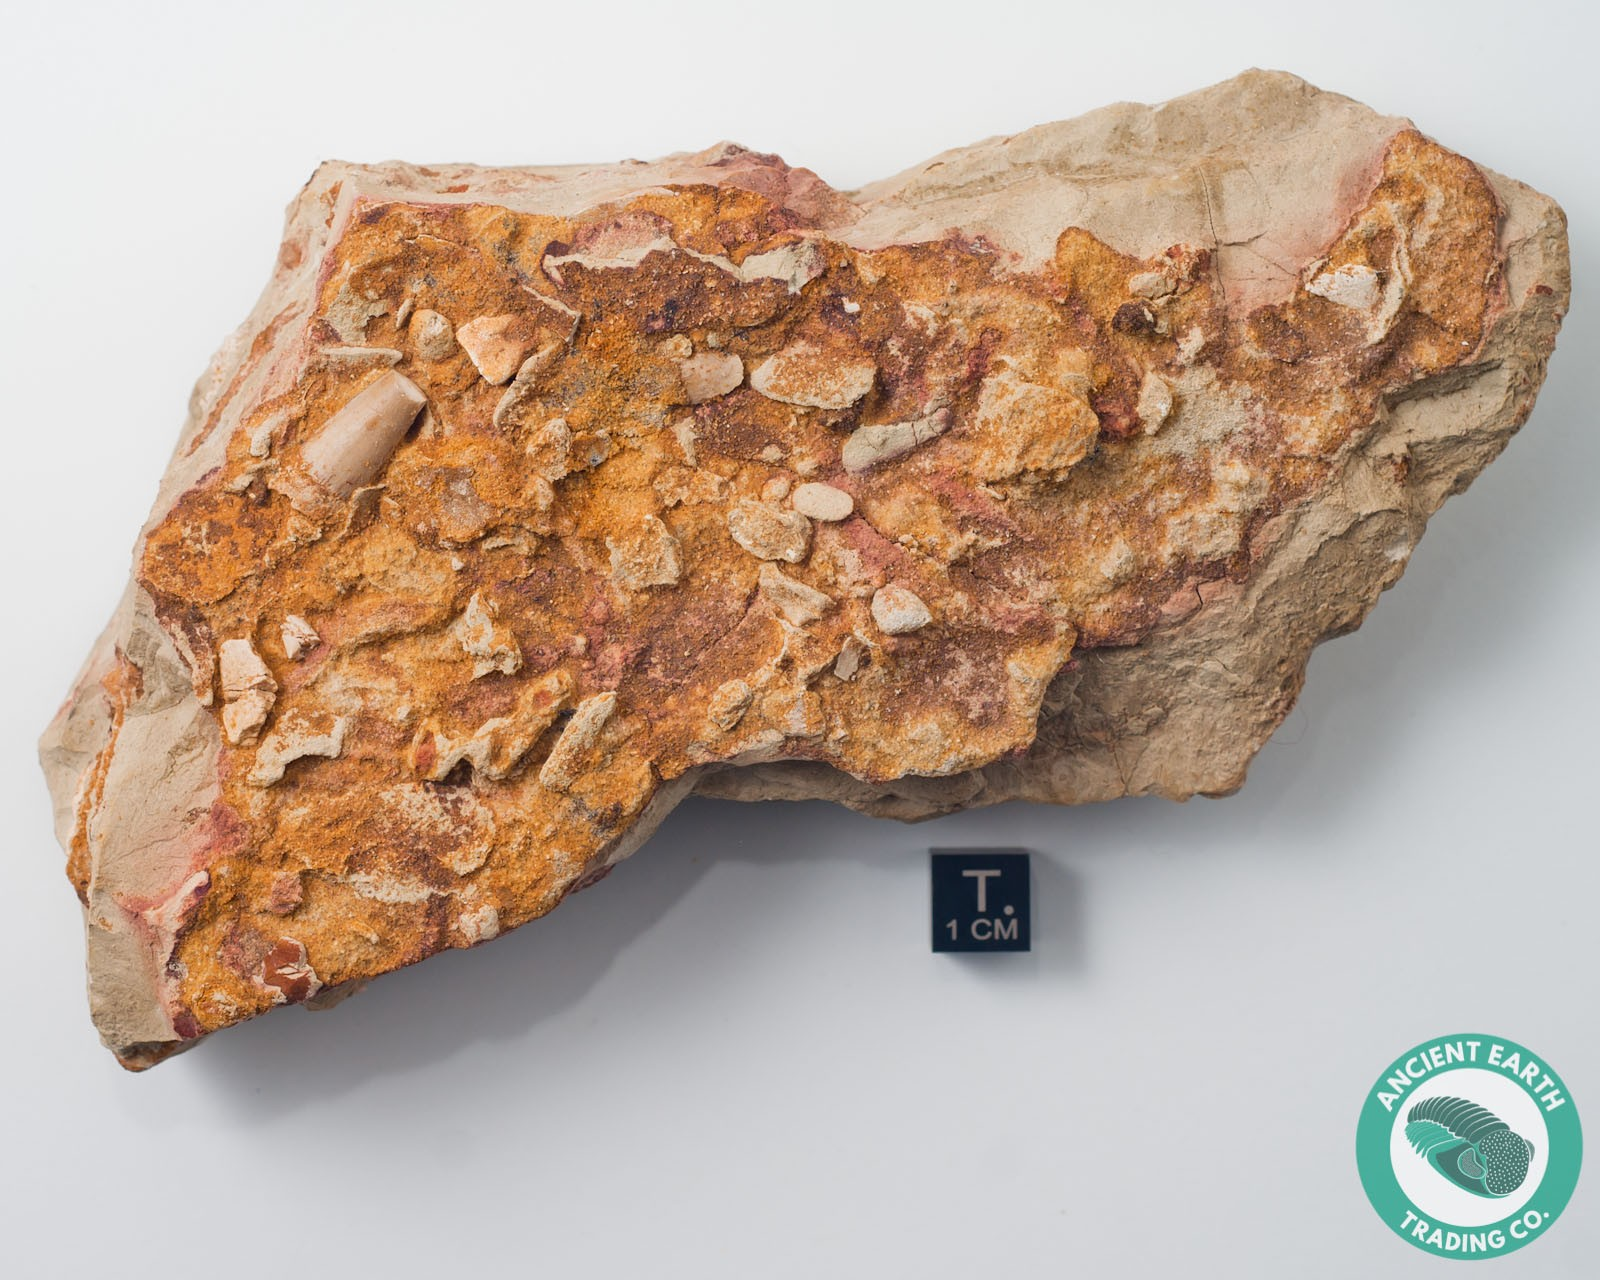 0.68 in Spinosaurus Tooth on Matrix - Morocco